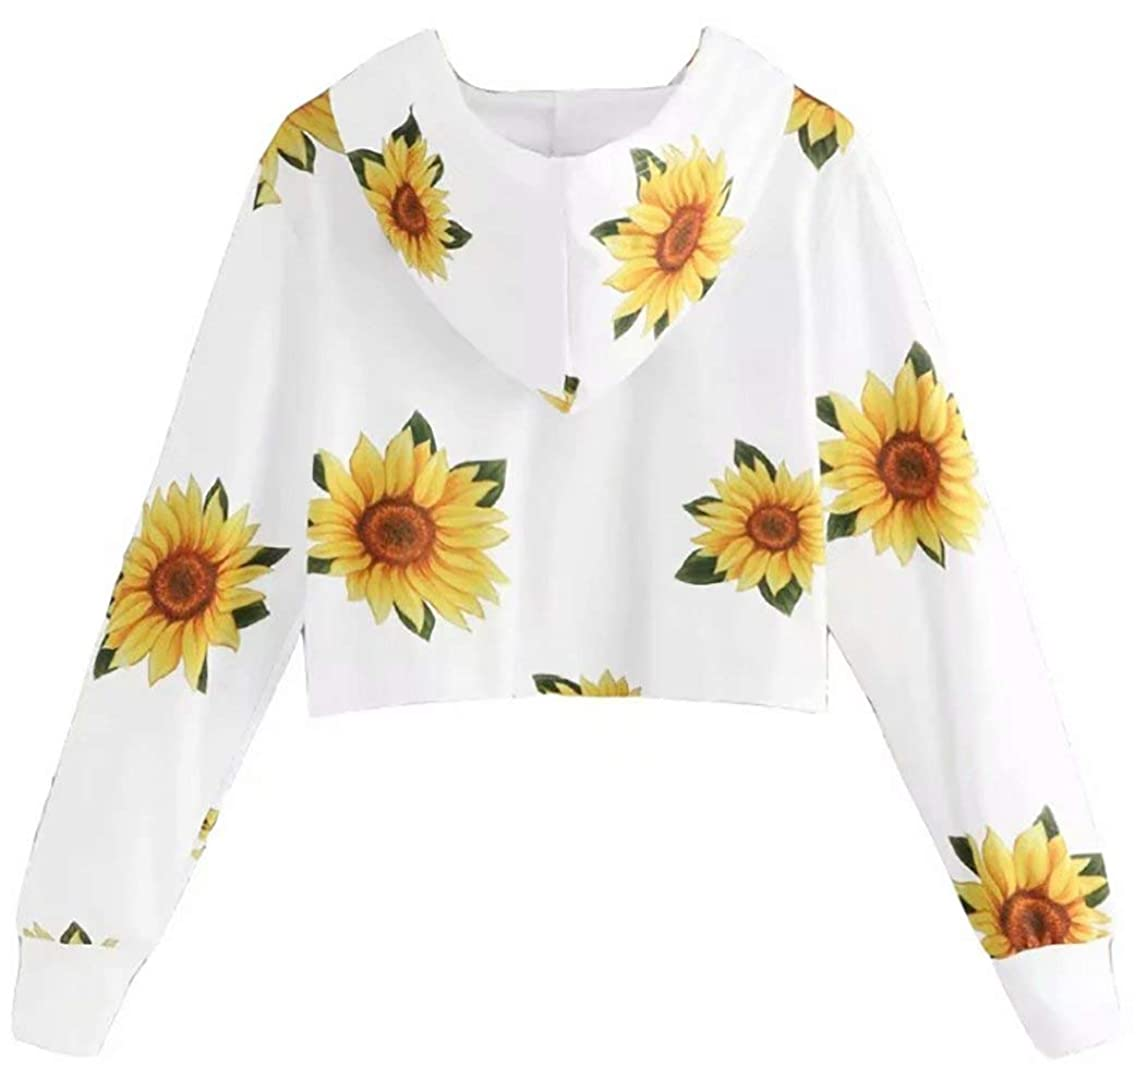 MAXIMGR Womens Crop Top Hoodie Sunflower Print Sweatshirt Pullover Long Sleeve Casual Hoodie